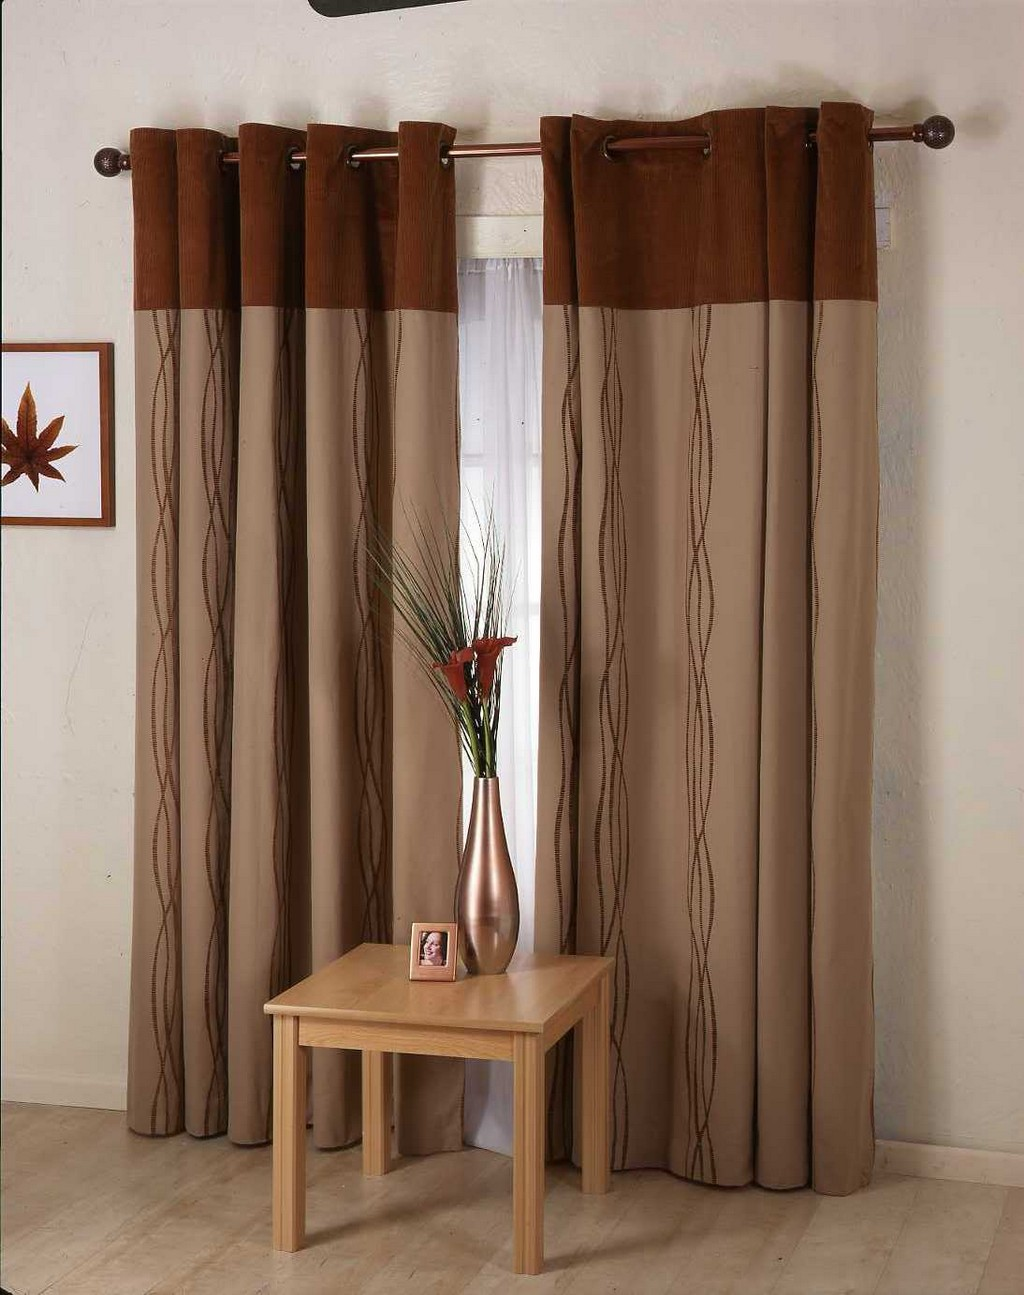 country kitchen curtains, chinz kitchen curtains, thermal curtains, alternative windows window treatments curtains